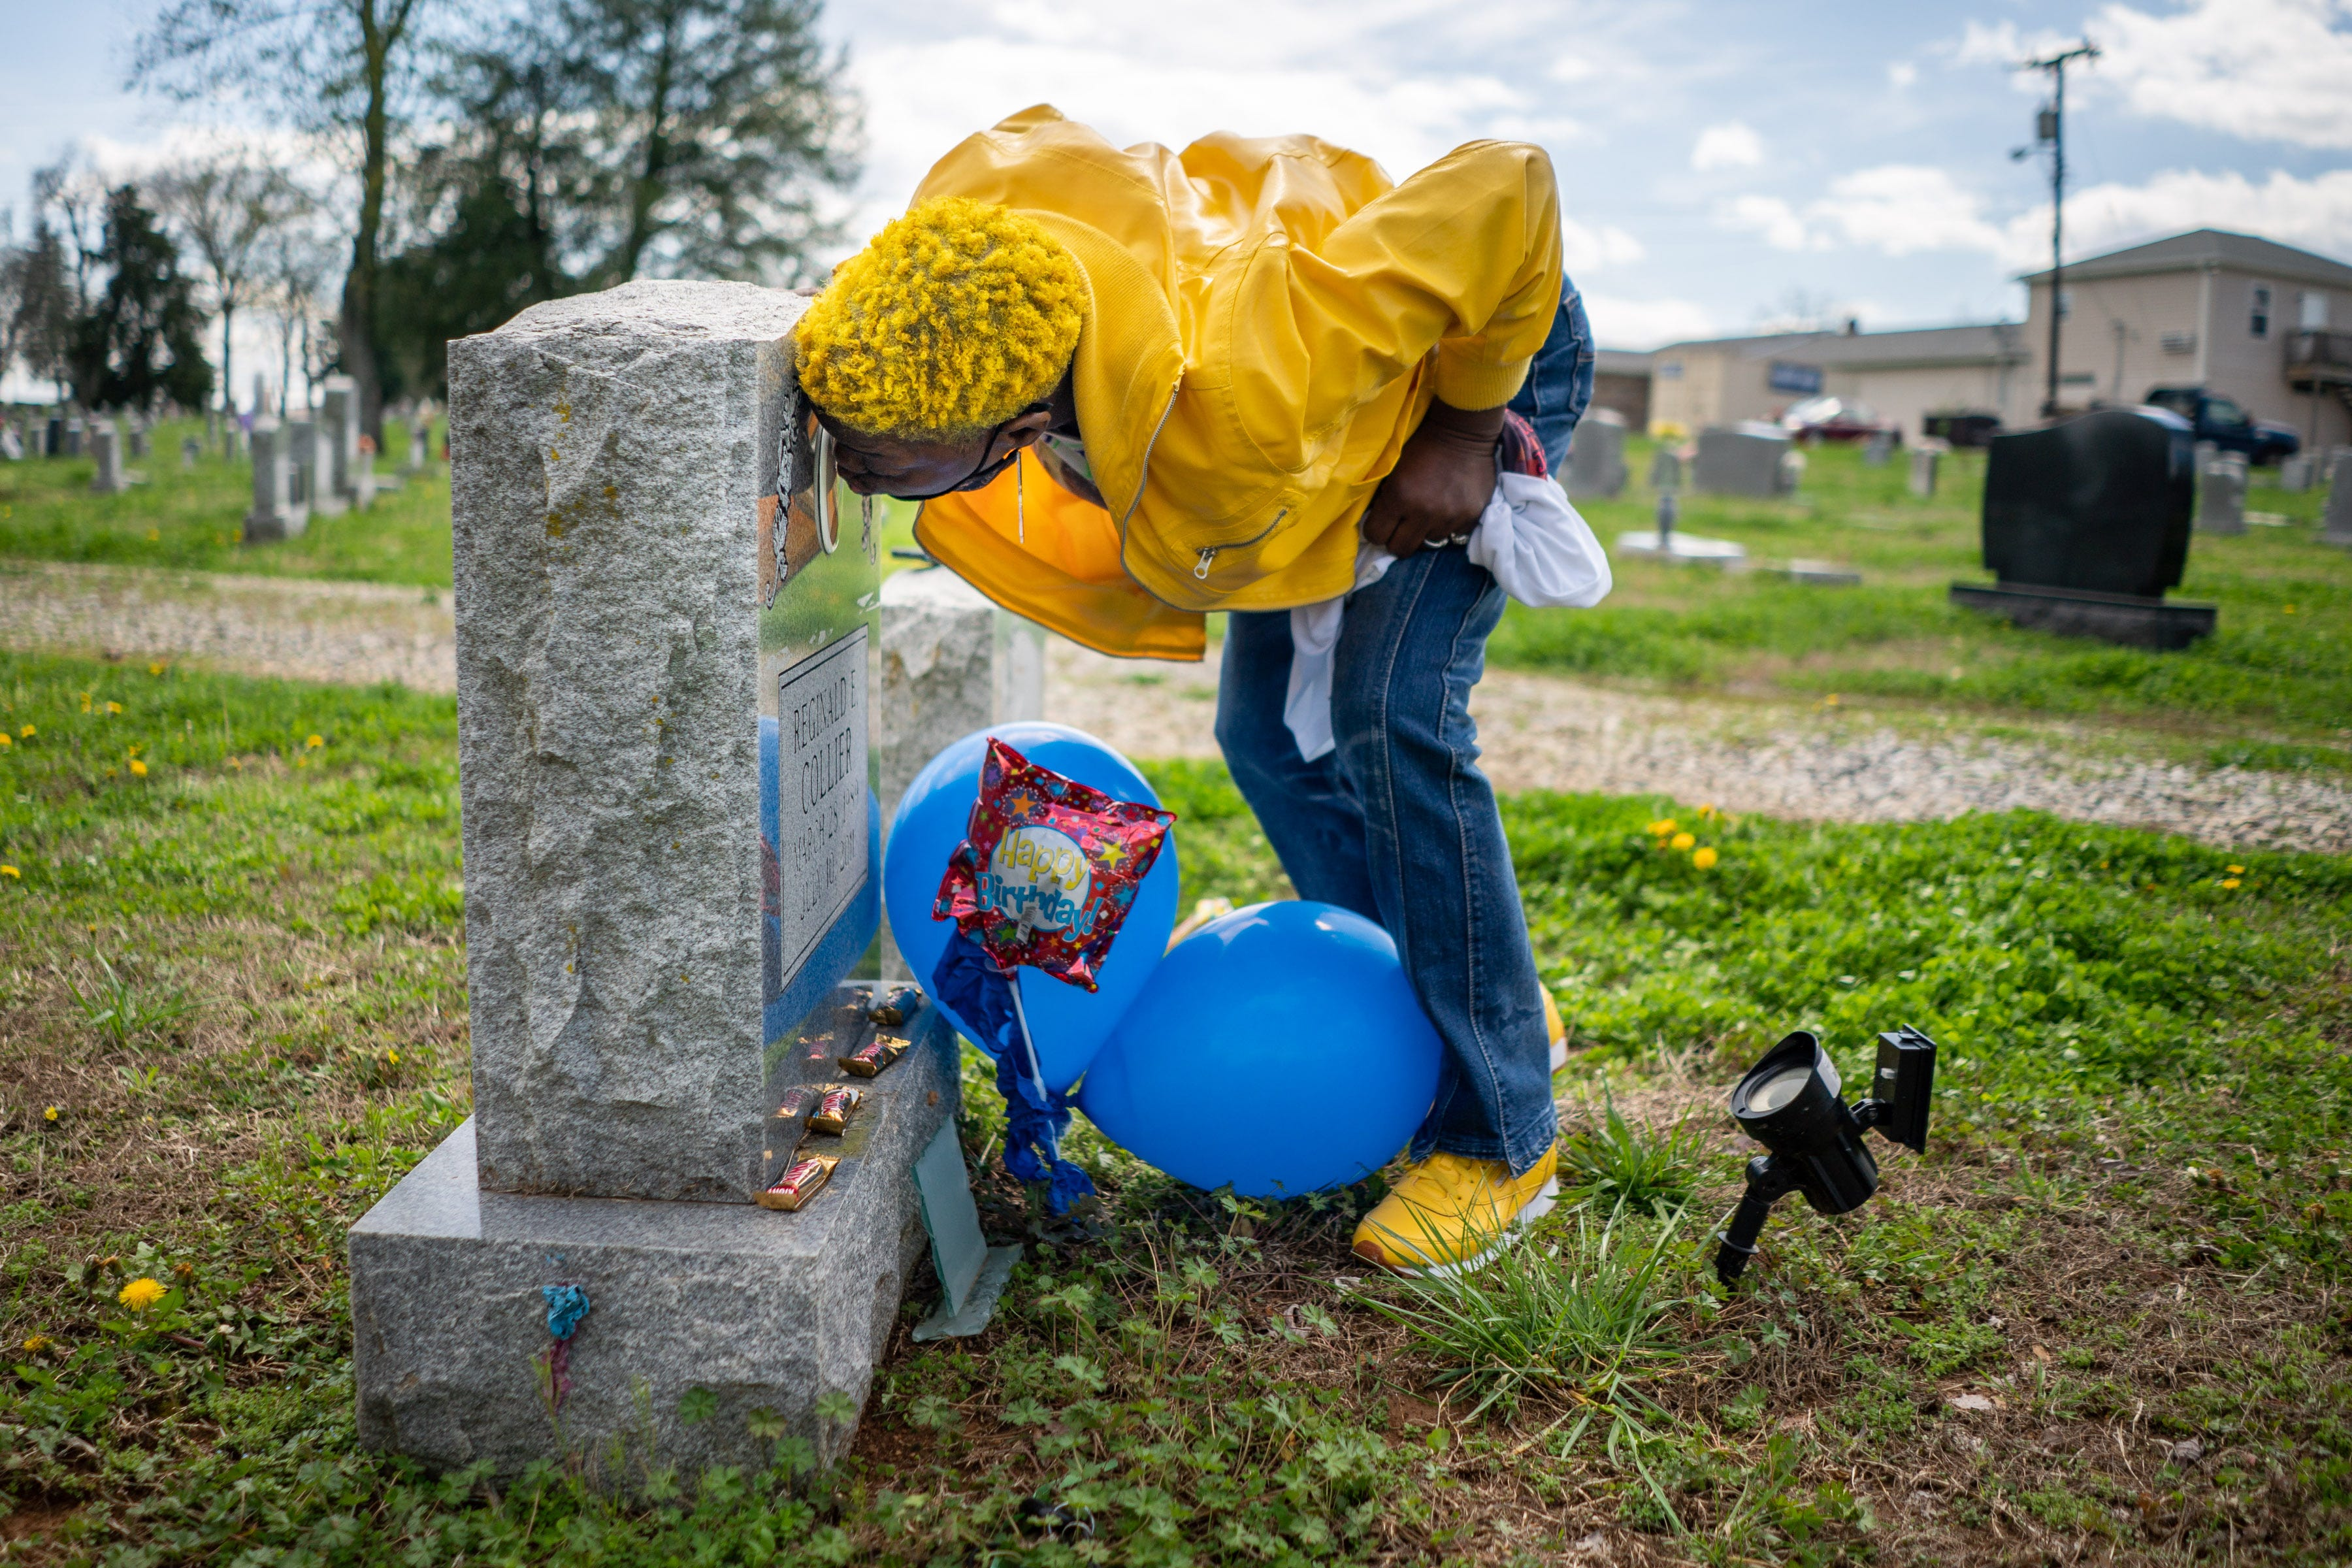 One mother. Two sons dead. Nashville and its struggle with gun violence